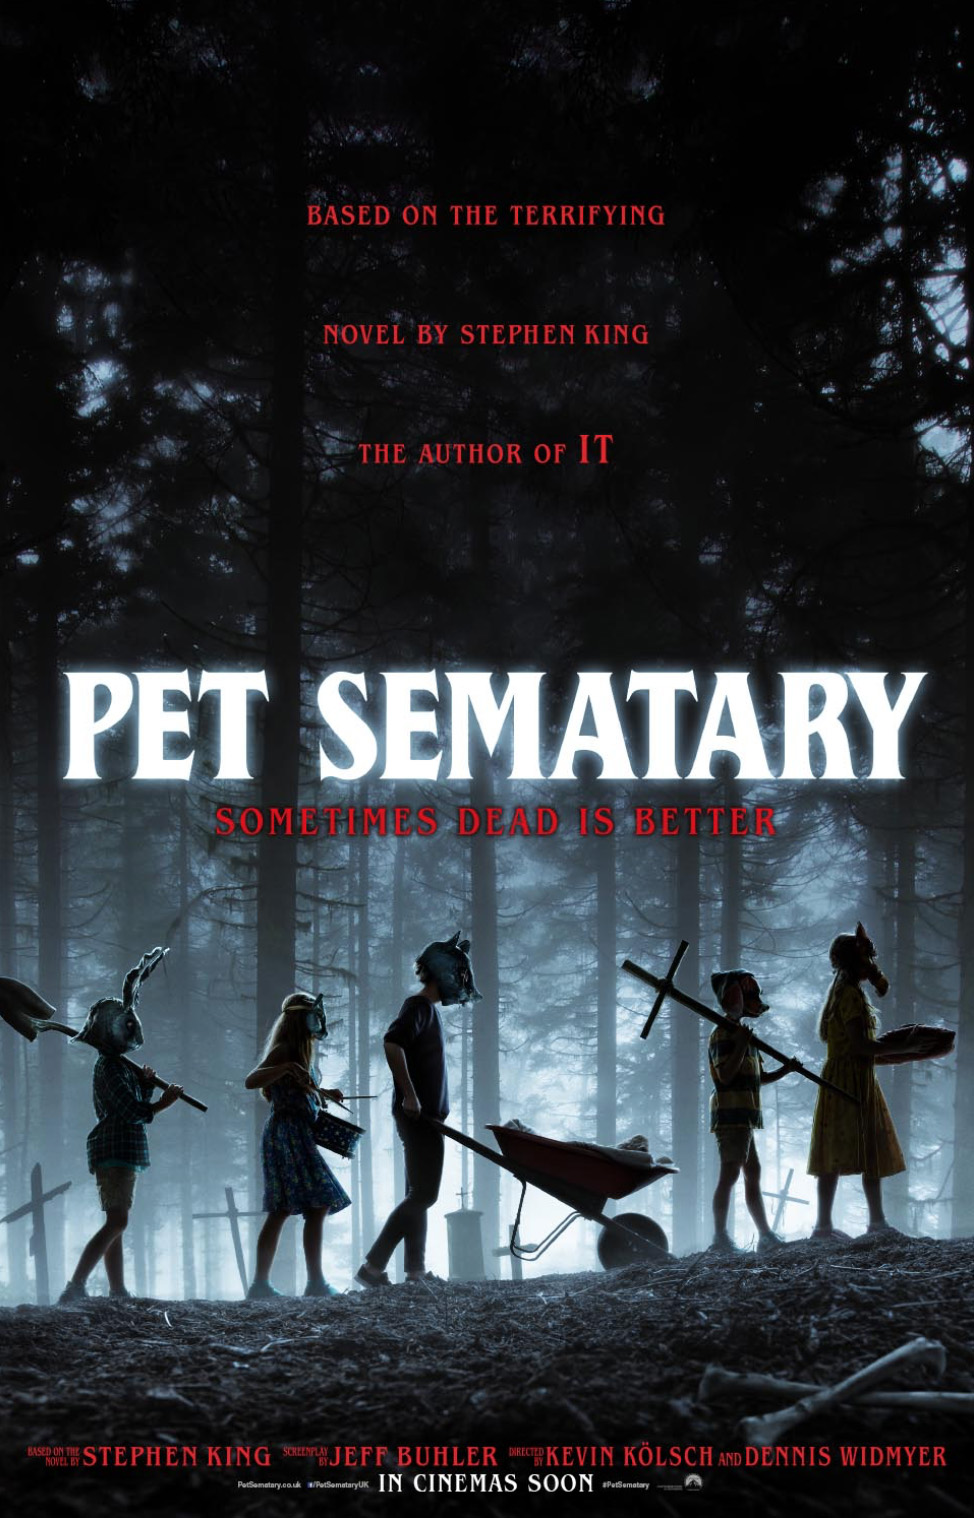 Film-makers discuss THAT change to their Pet Sematary movie